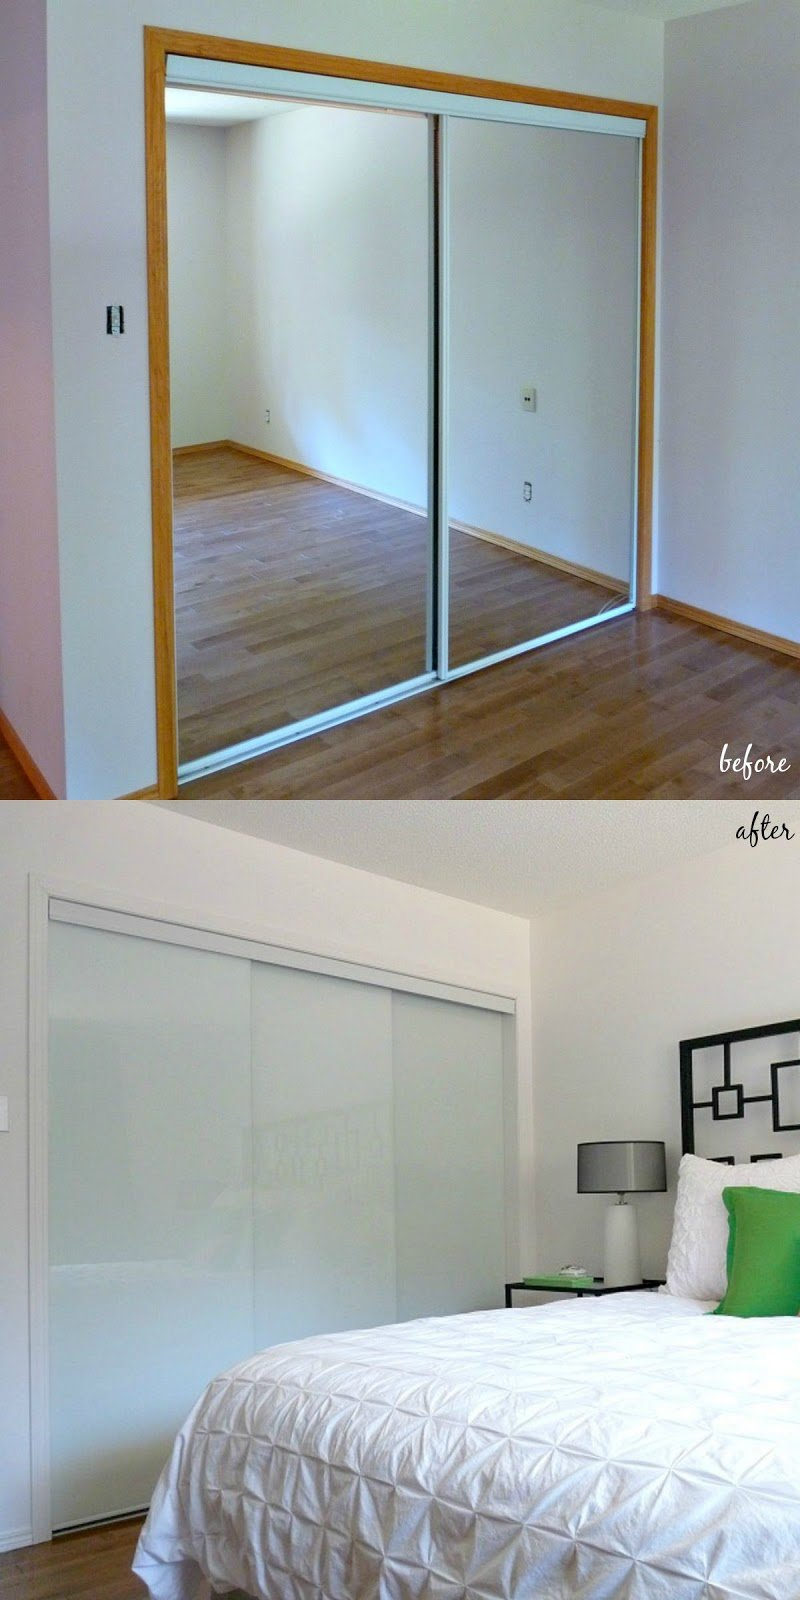 Best New White Glass Sliding Closet Doors In The Bedroom Dans Le Lakehouse With Pictures Original 1024 x 768